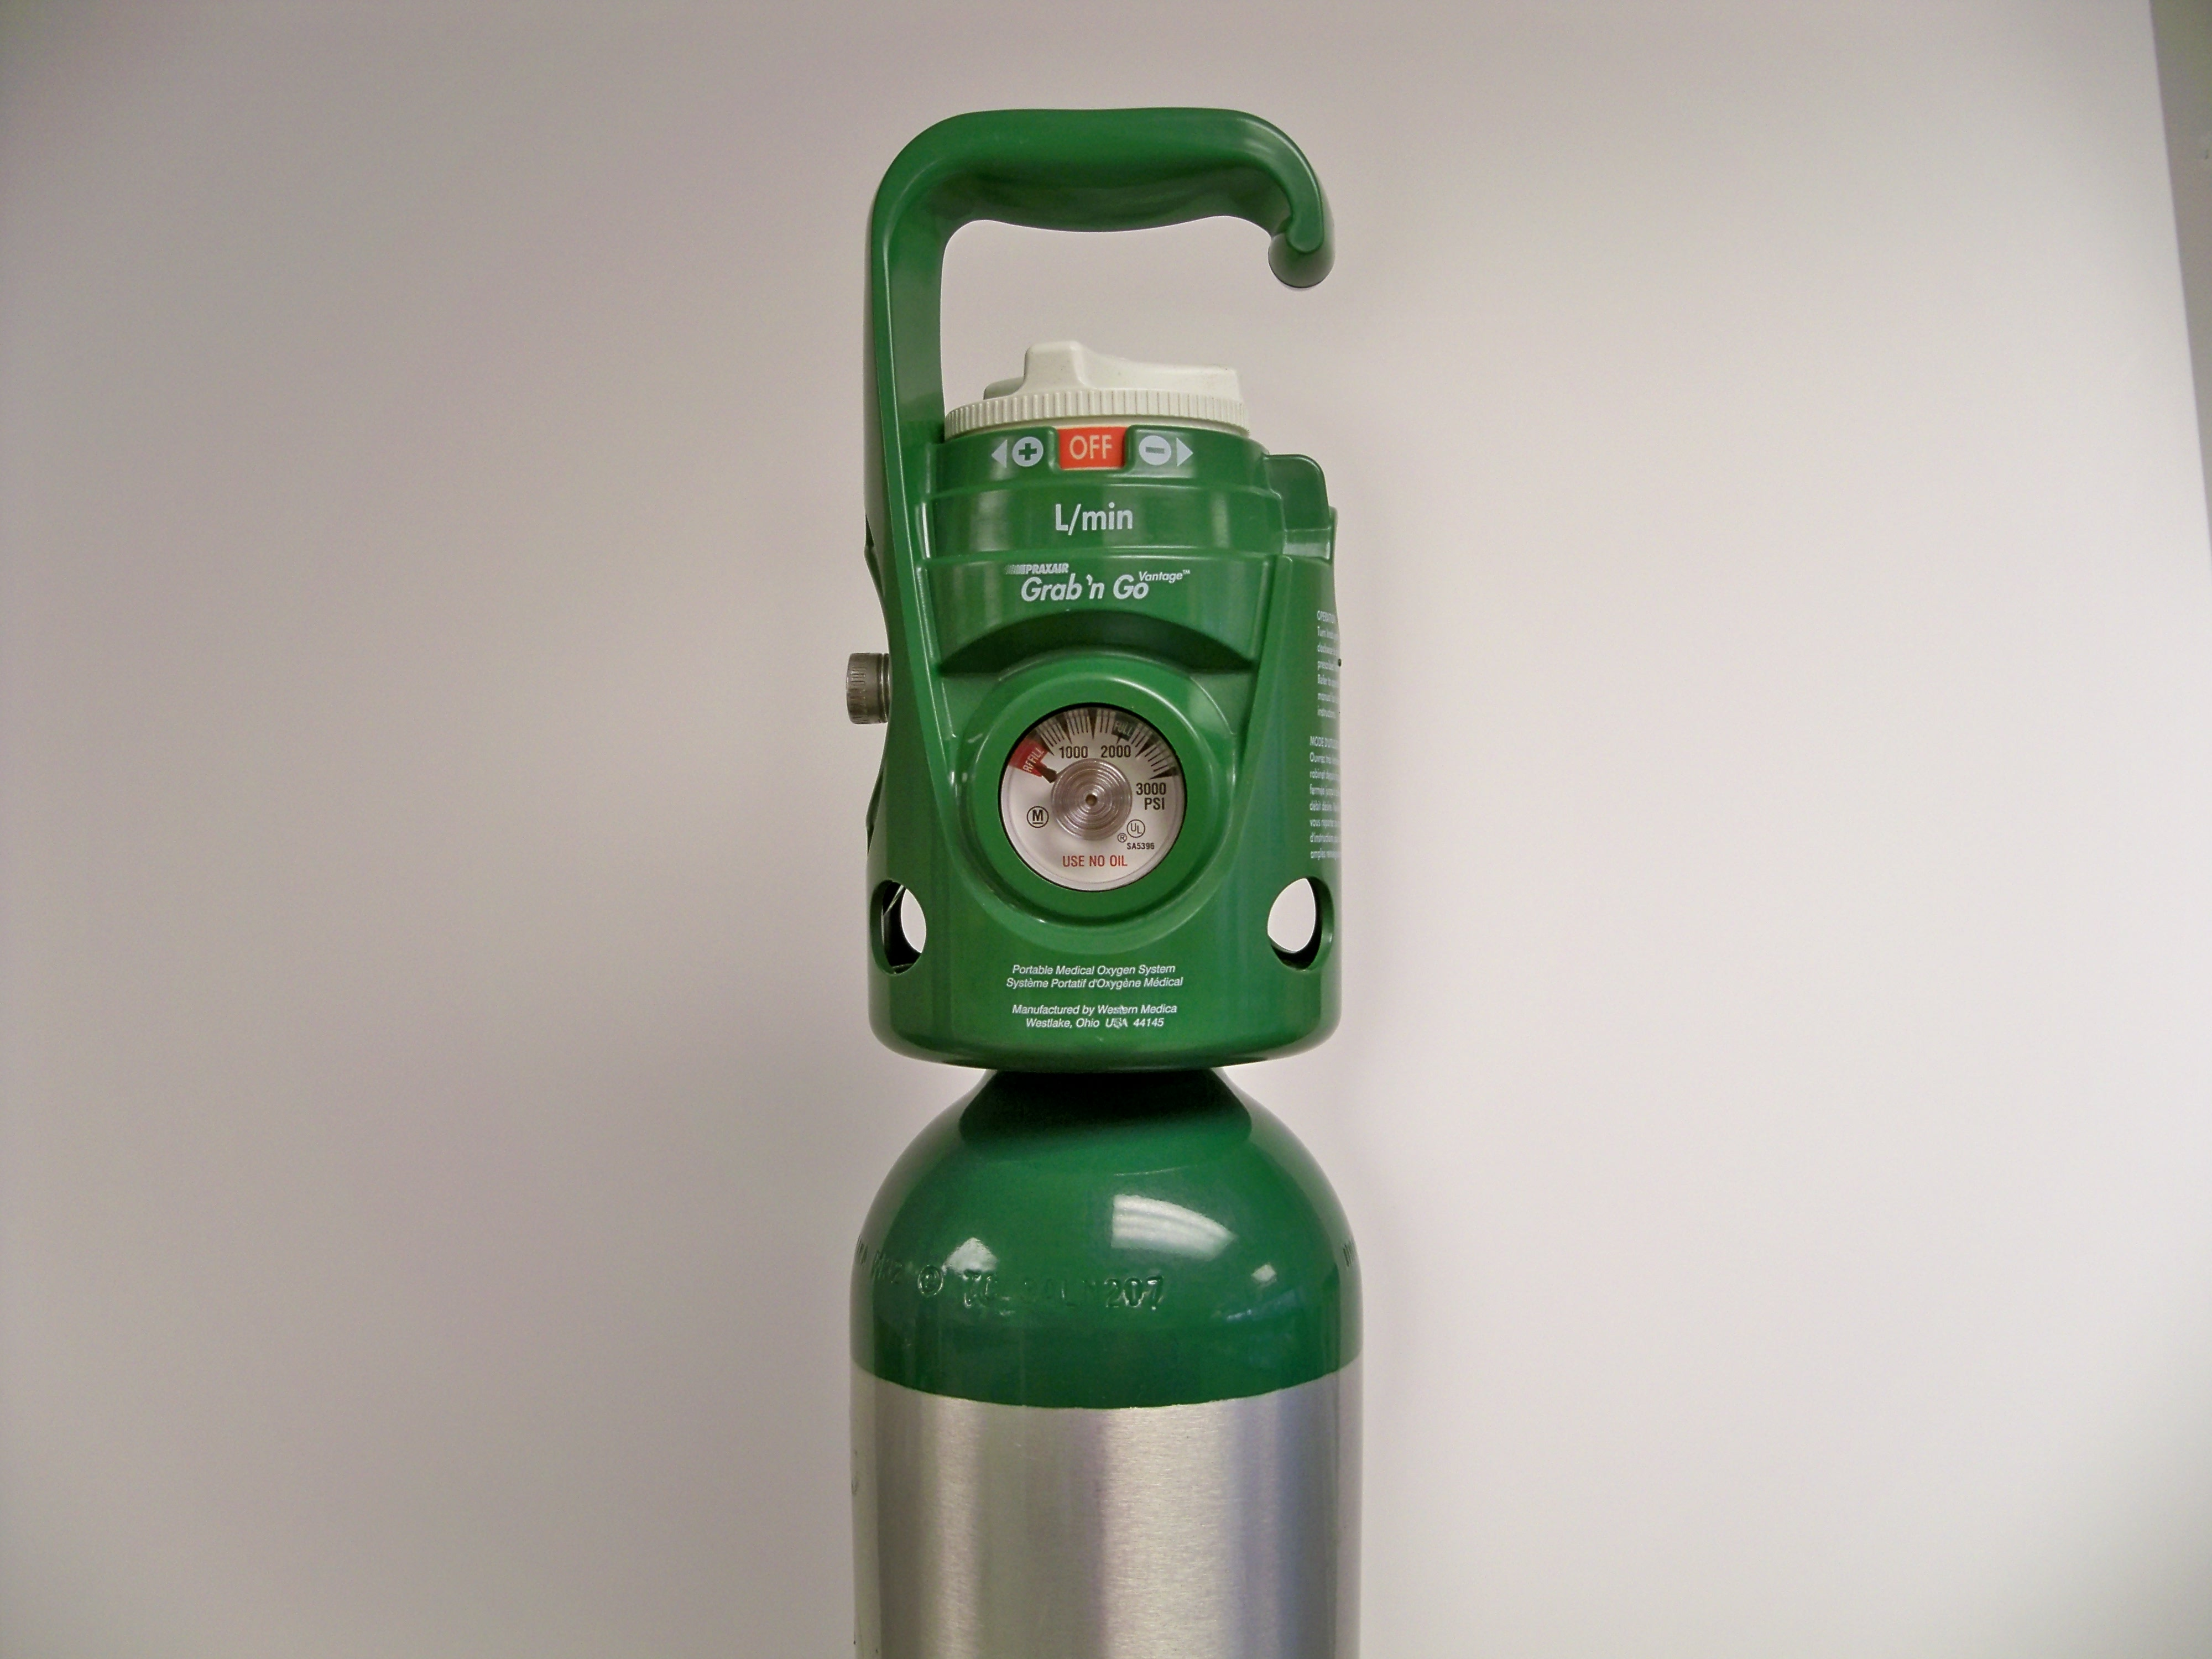 RECALLED_%E2%80%93_Portable_oxygen_cylinder_units_%288294127015%29